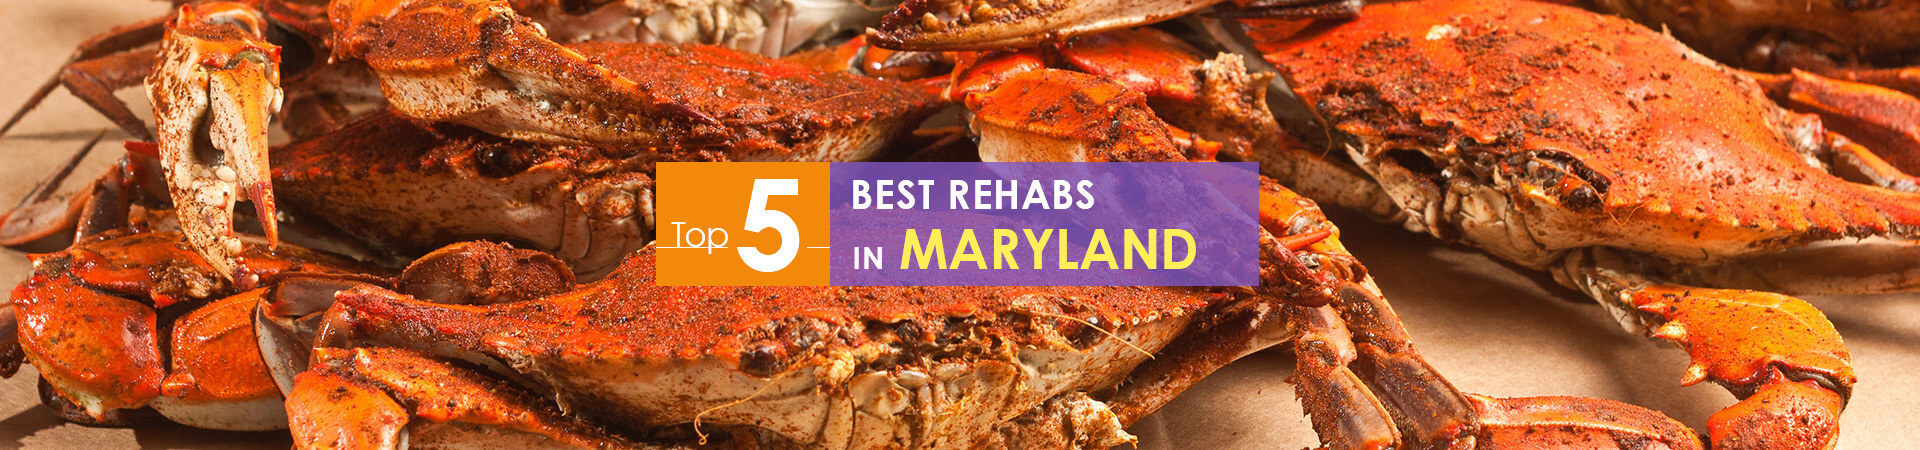 Chesapeake Bay blue claw crabs and top 5 rehabs caption